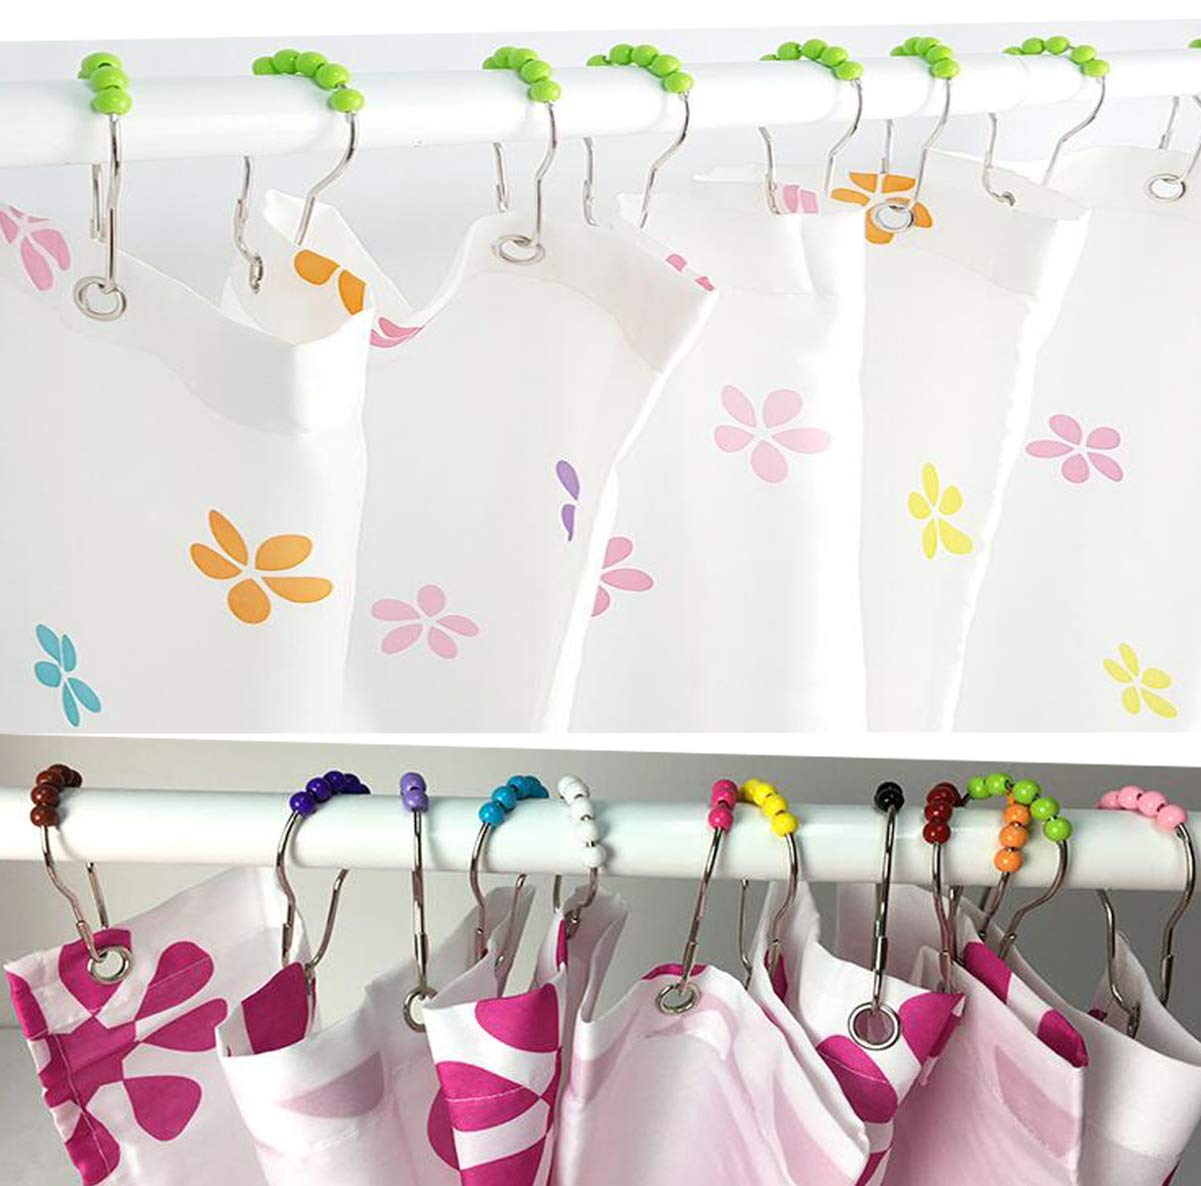 Biluer 12PCS Shower Curtain Rings Stainless Steel Shower Curtain Hooks Bath Curtain Rings Colored Acrylic Roller Ball As Sliding System Single Hooks Shower Rings with Easy Installation